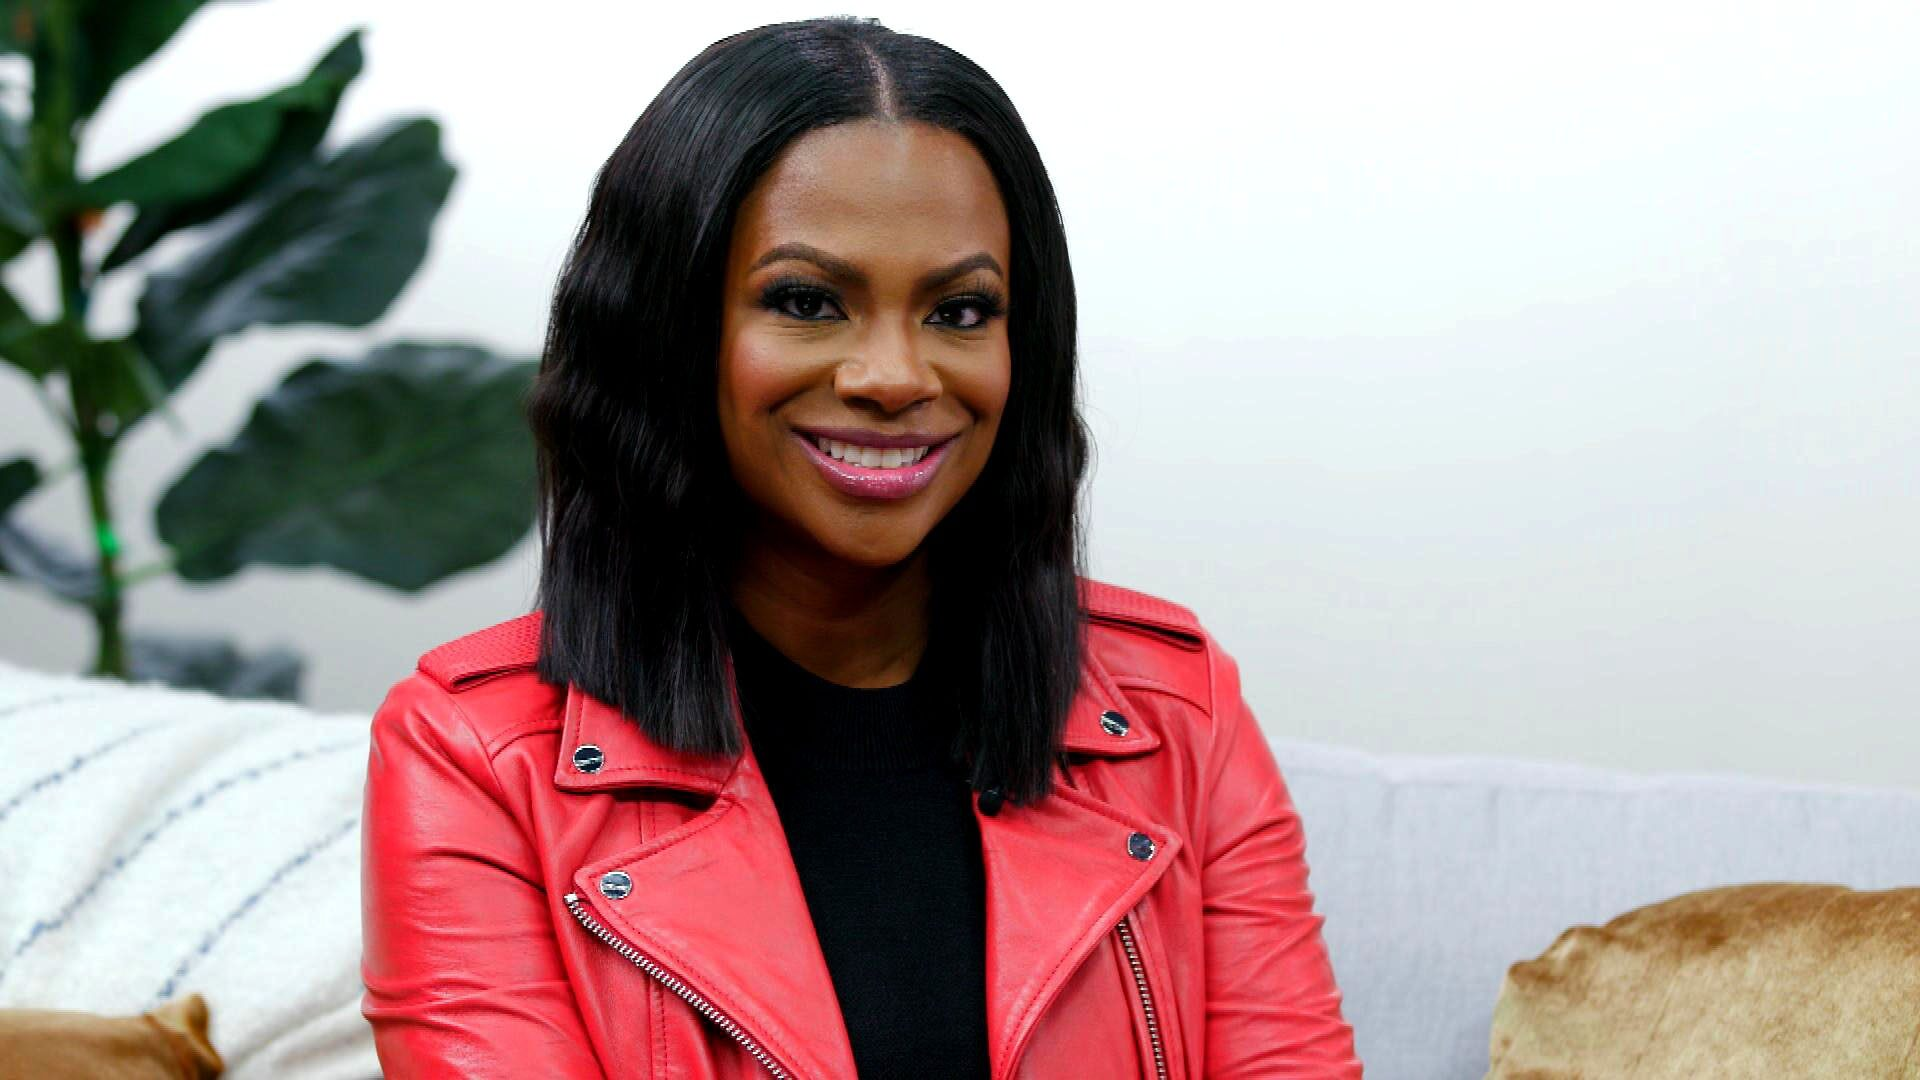 Kandi Burruss Gushes Shows Massive Support To One Of Her Friends